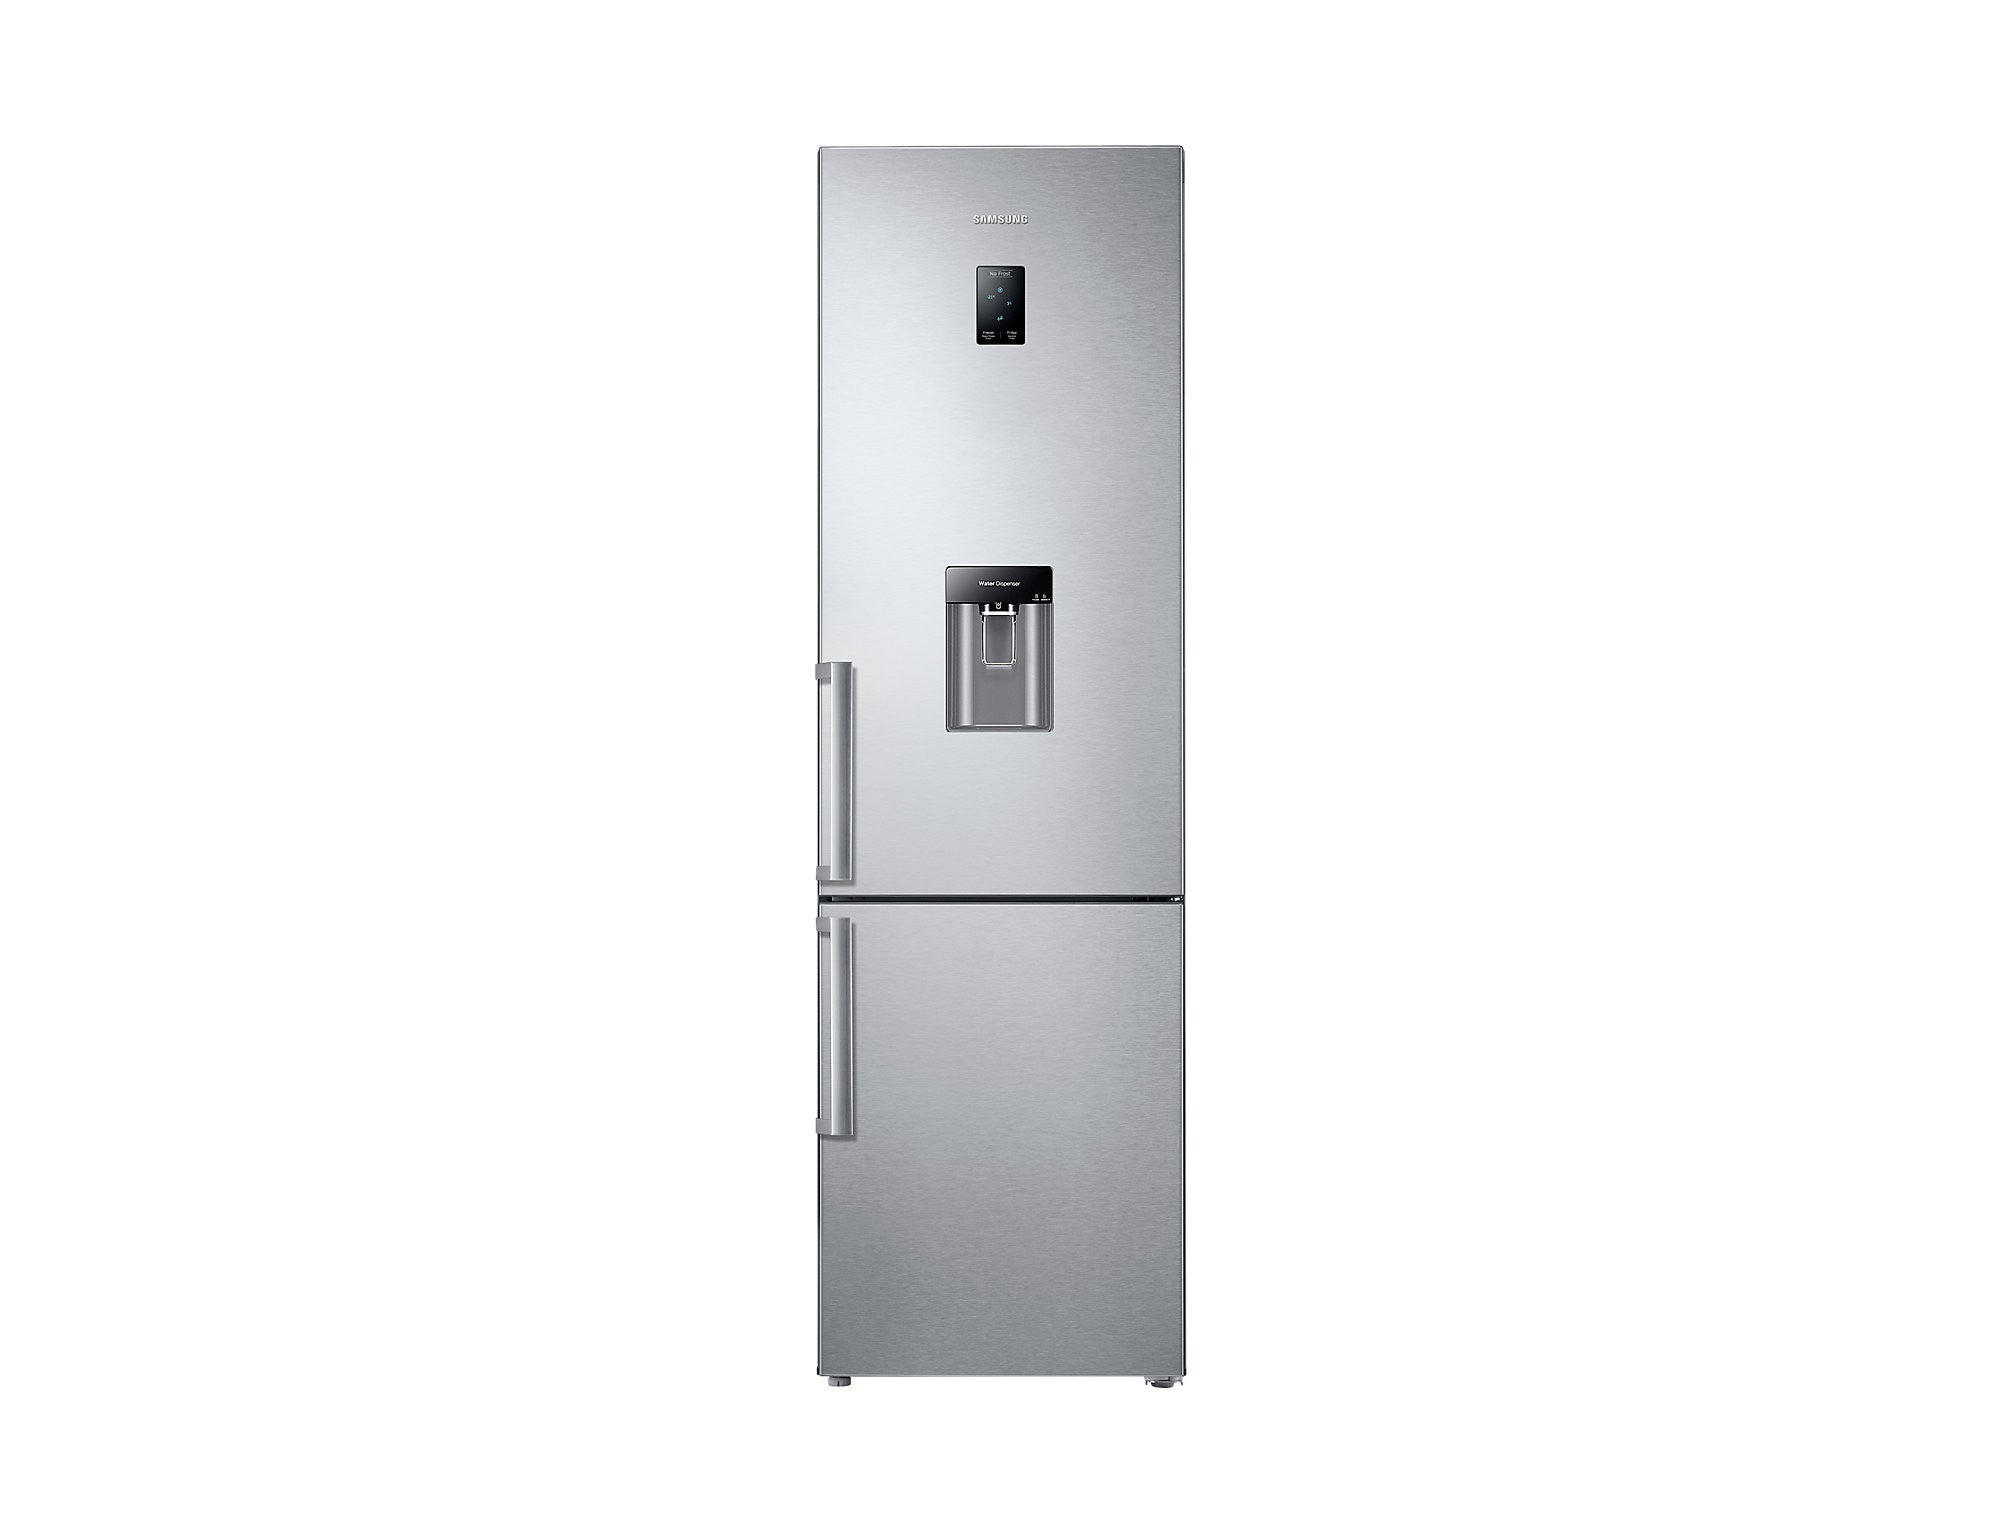 SAMSUNG - RB37J5942SL 367L Fridge/Freezer Combo